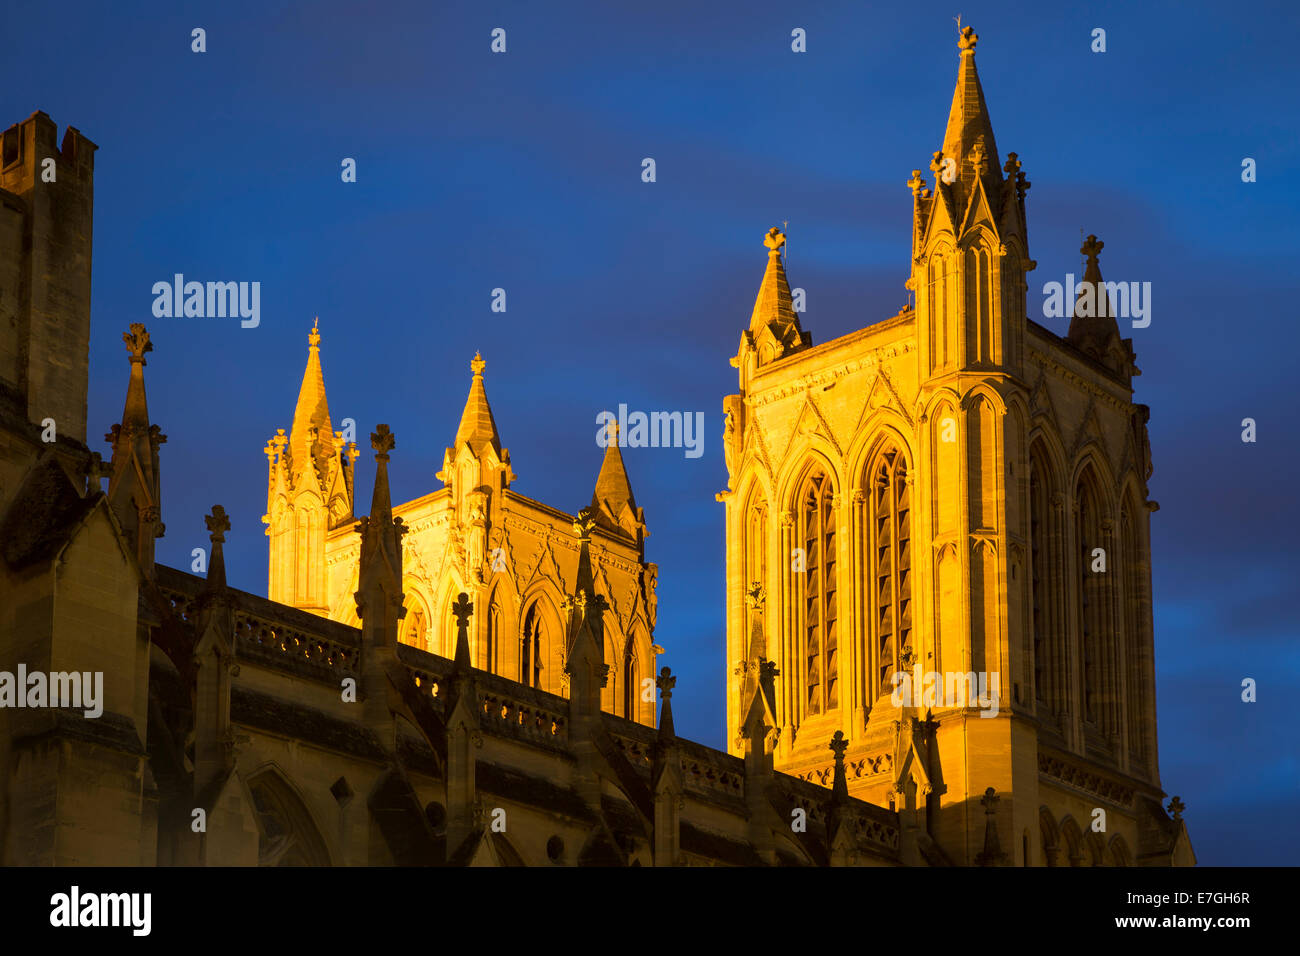 Lighted towers of Cathedral Church of the Holy and Undivided Trinity, Bristol, England Stock Photo